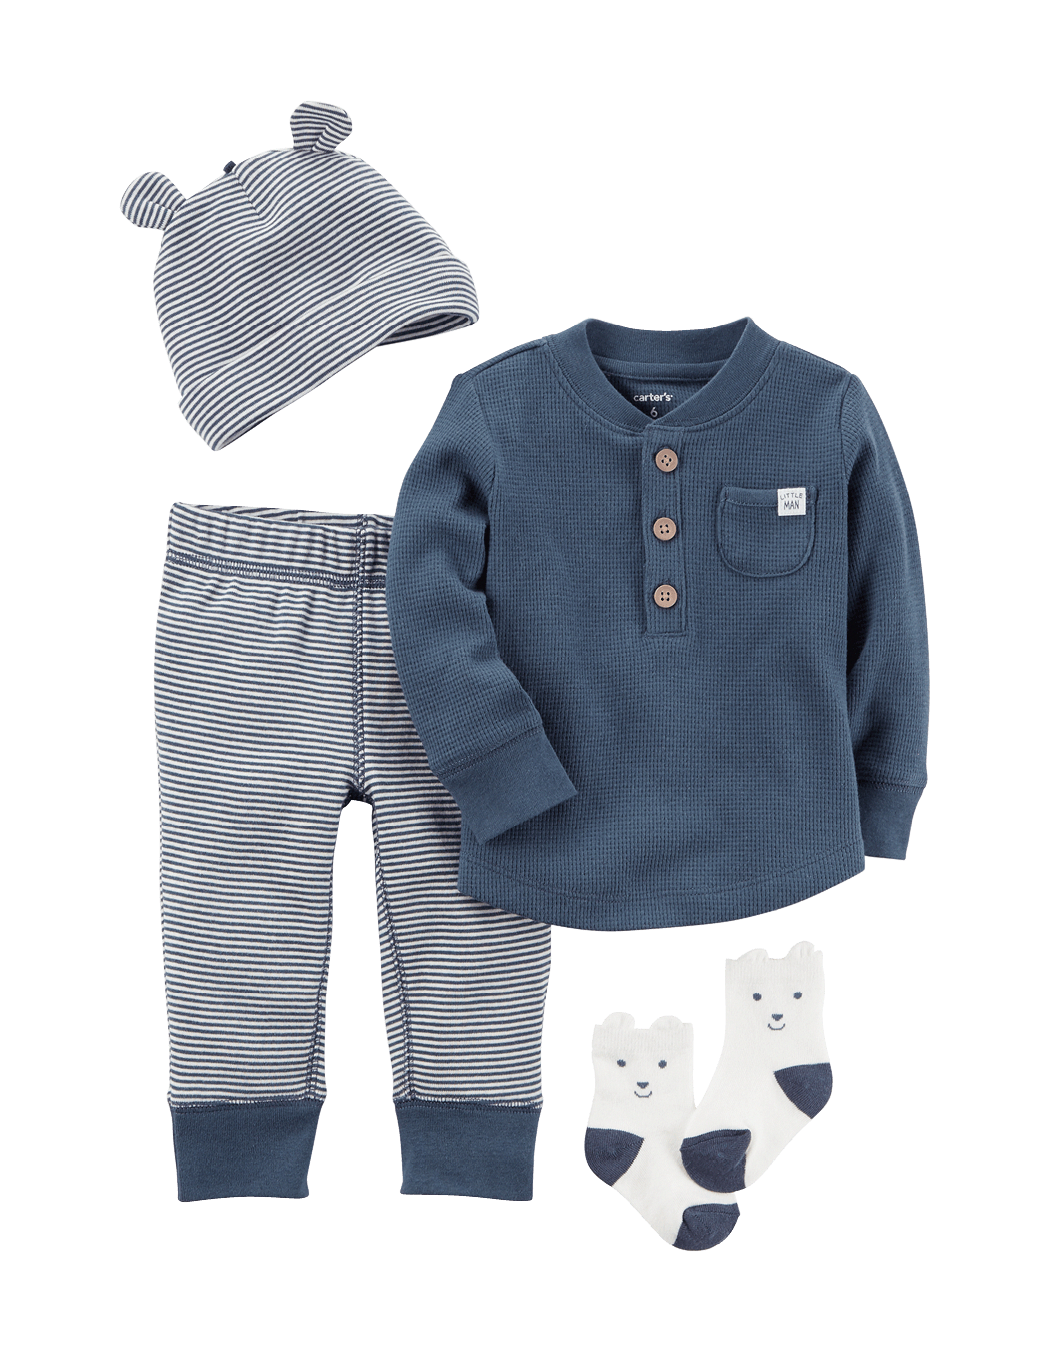 Casual Clothes For Boys Stylish Boy Outfits Cheap Boys Clothes